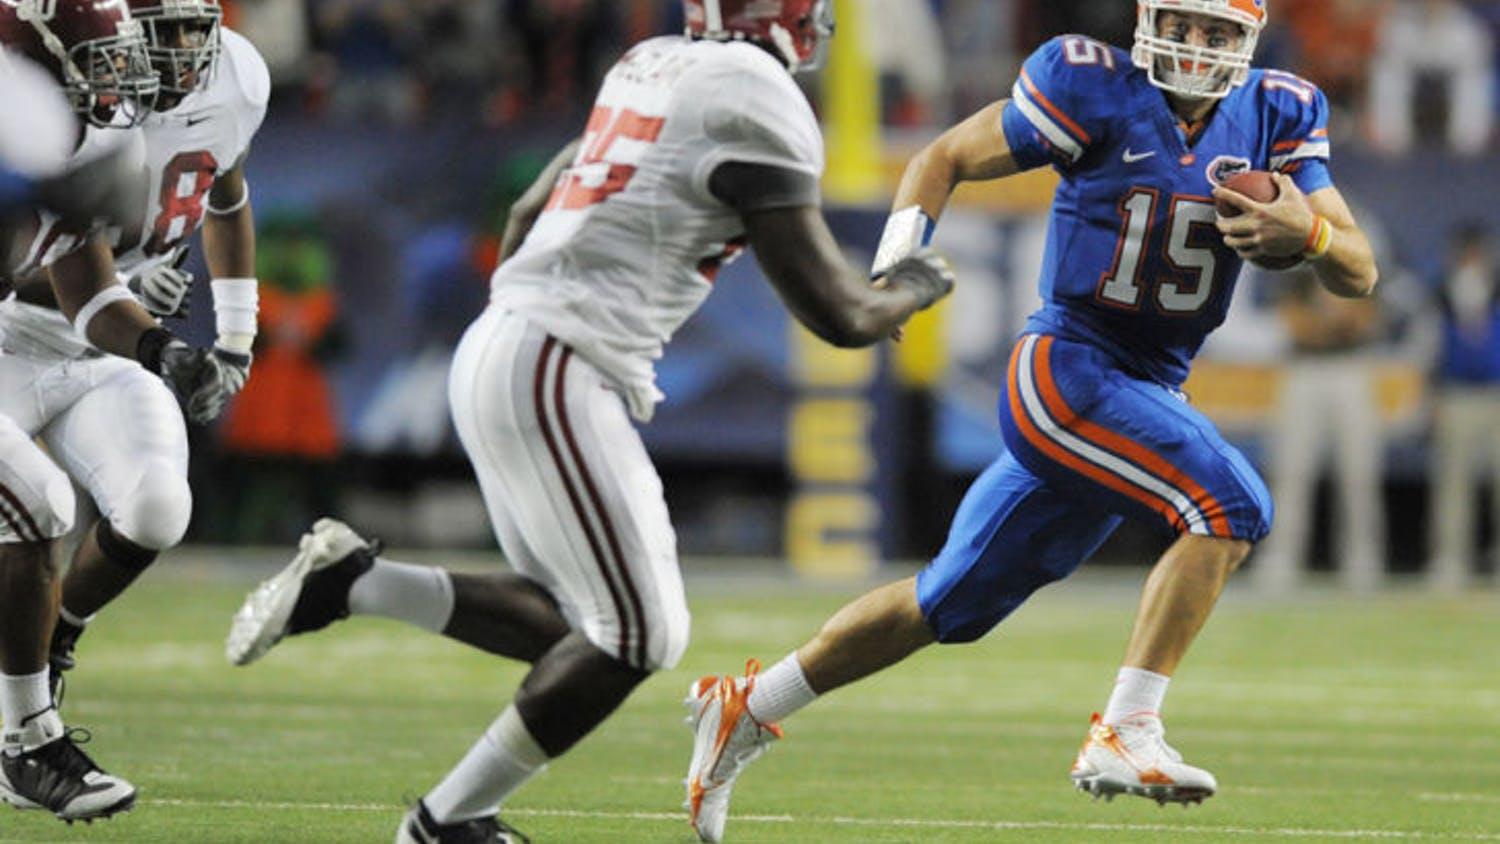 Former Florida quarterback Tim Tebow (15) escapes pressure from Alabama linebacker Rolando McClain (25) during UF's 31-20 win in the 2008 SEC Championship Game. Tebow signed with the Jaguars as a tight end May 20.